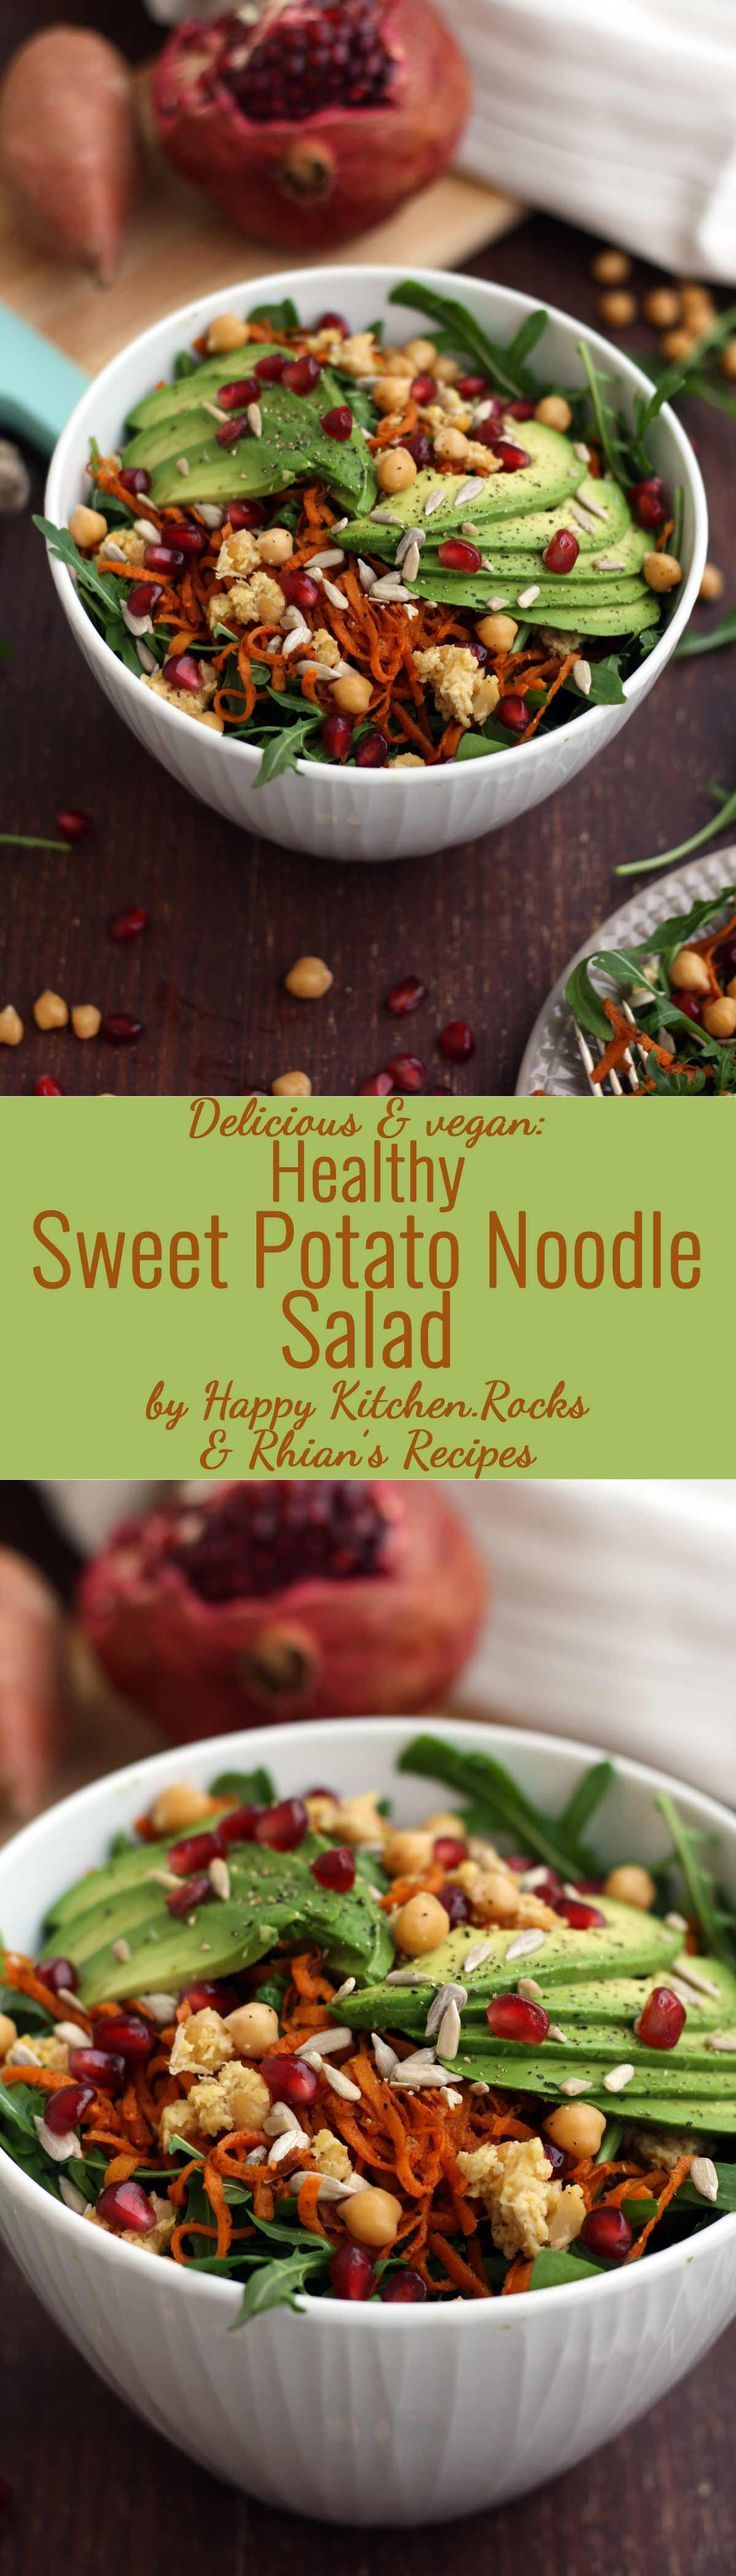 Healthy, easy and delicious vegan Sweet Potato Noodle Salad with Chickpeas and Rocket recipe. It makes for a great nutritious lunch or a nice gluten free side dish!